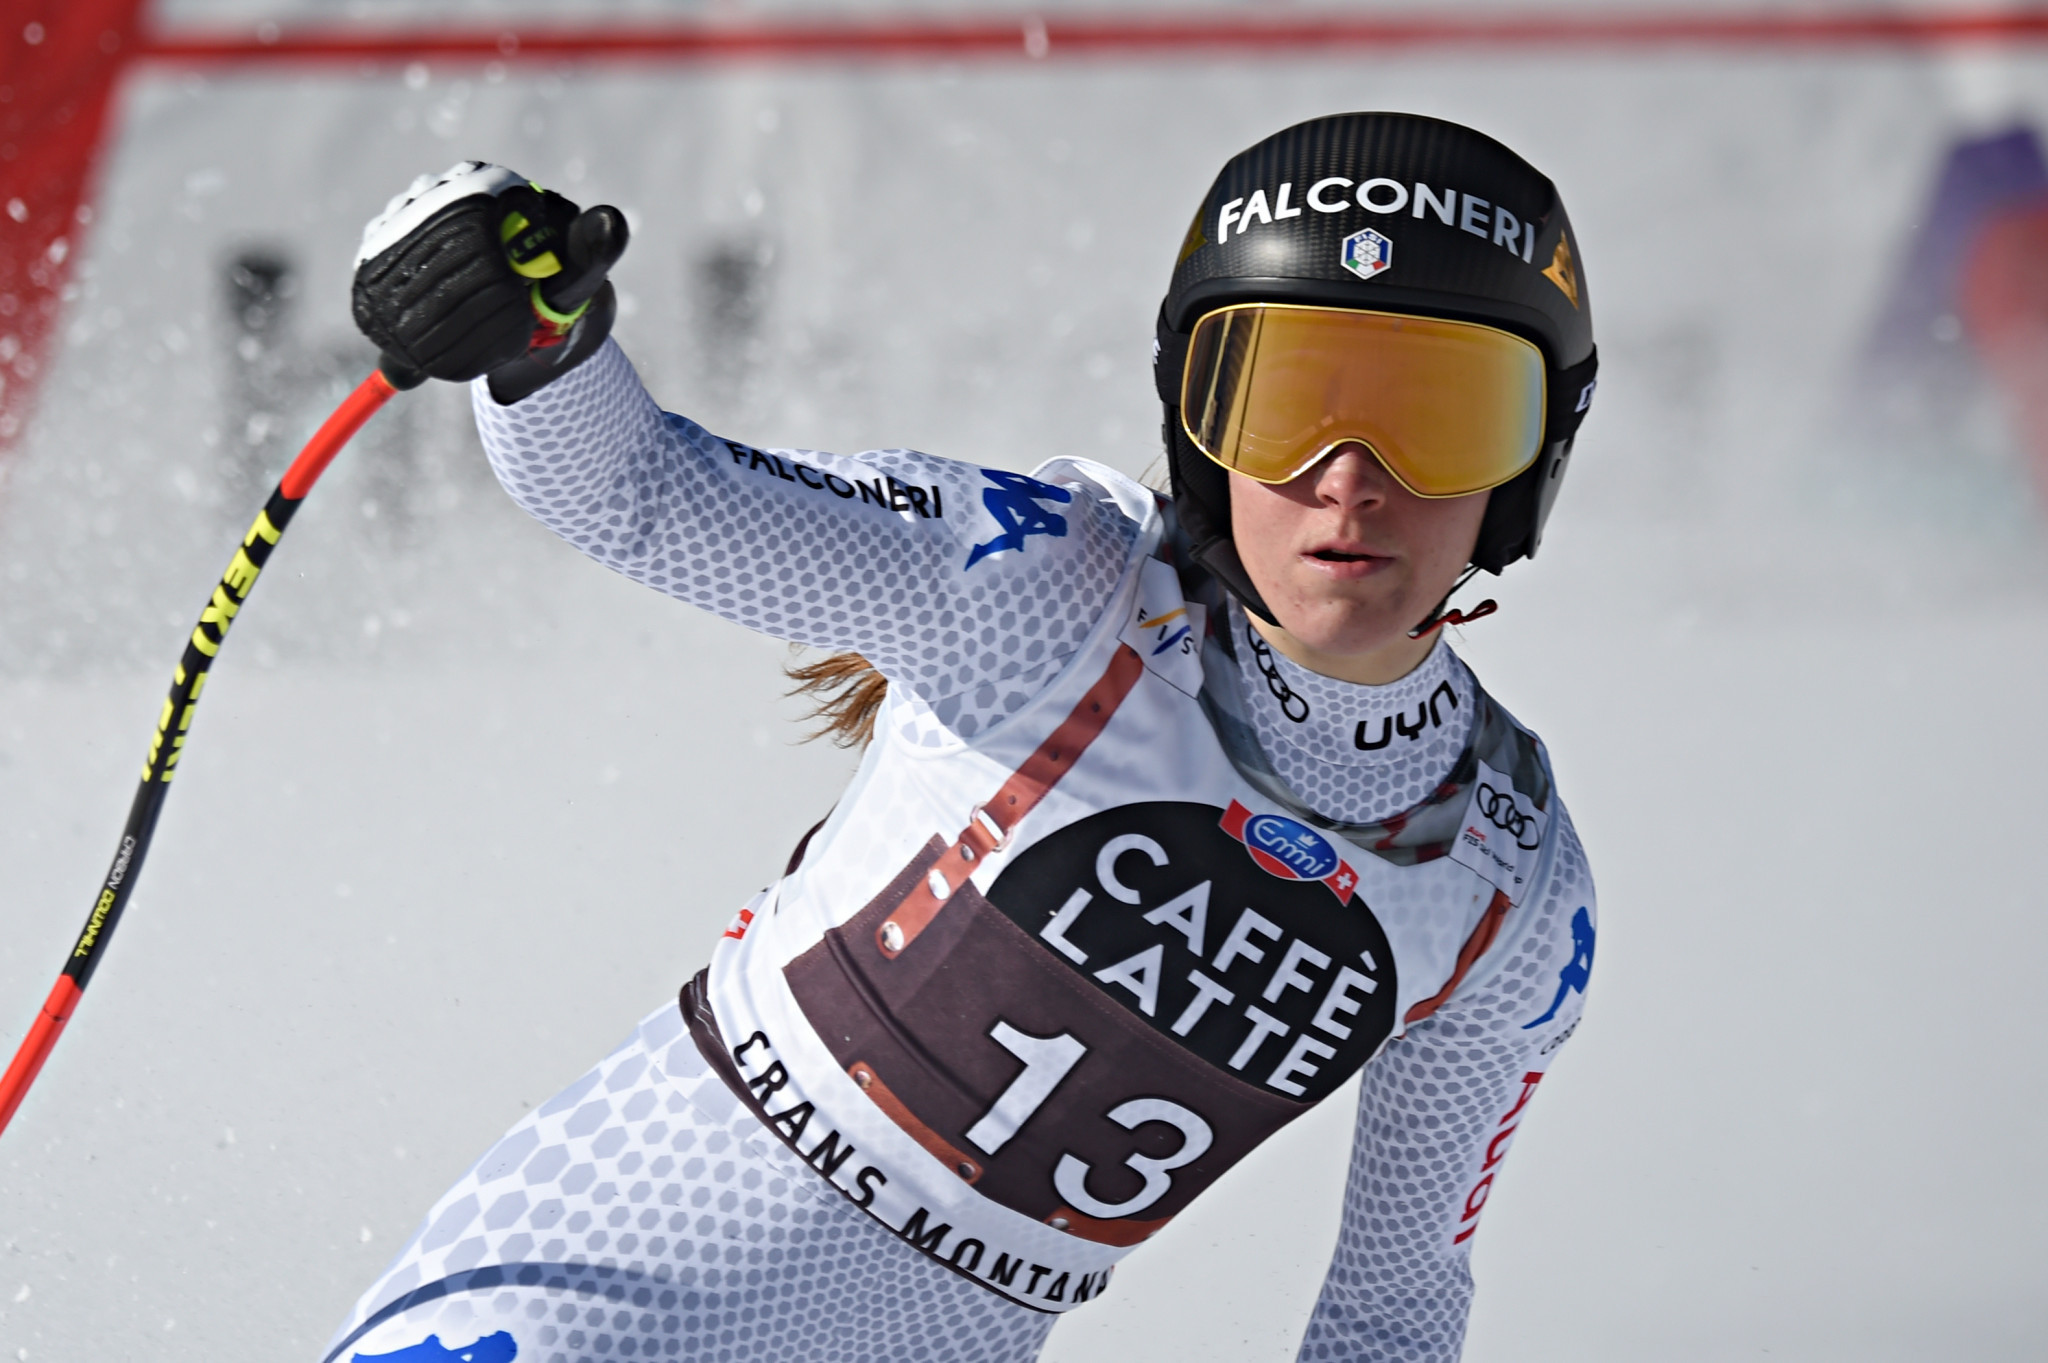 Sofia Goggia triumphed in the downhill event at Crans-Montana ©Getty Images